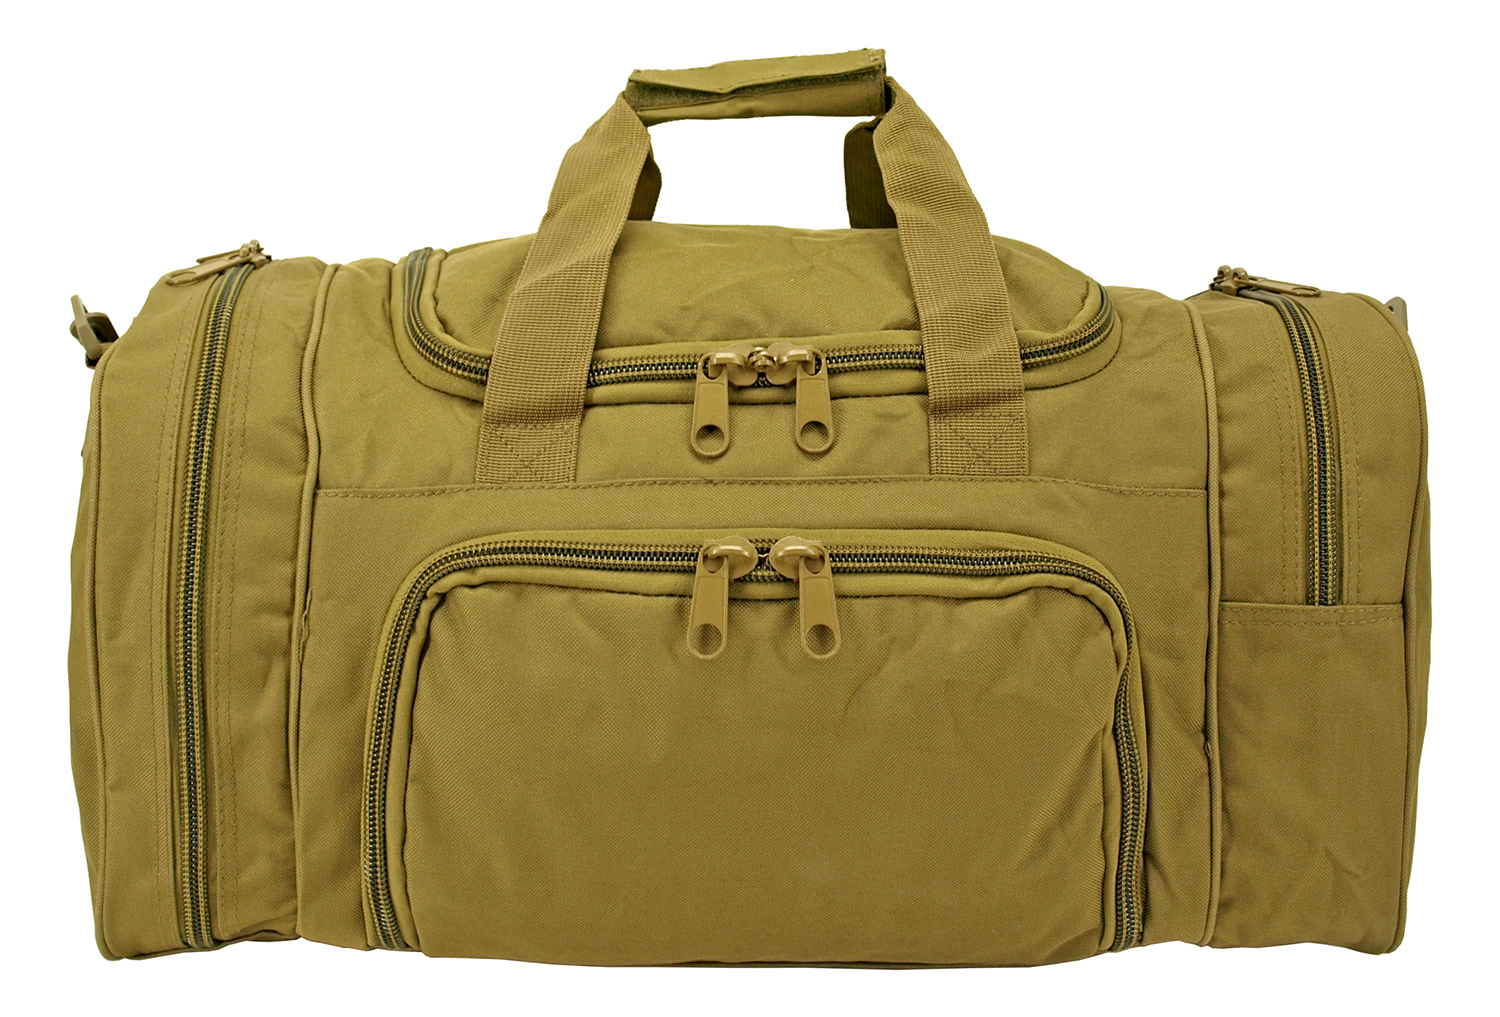 Tactical Duffle Bag - Desert Tan